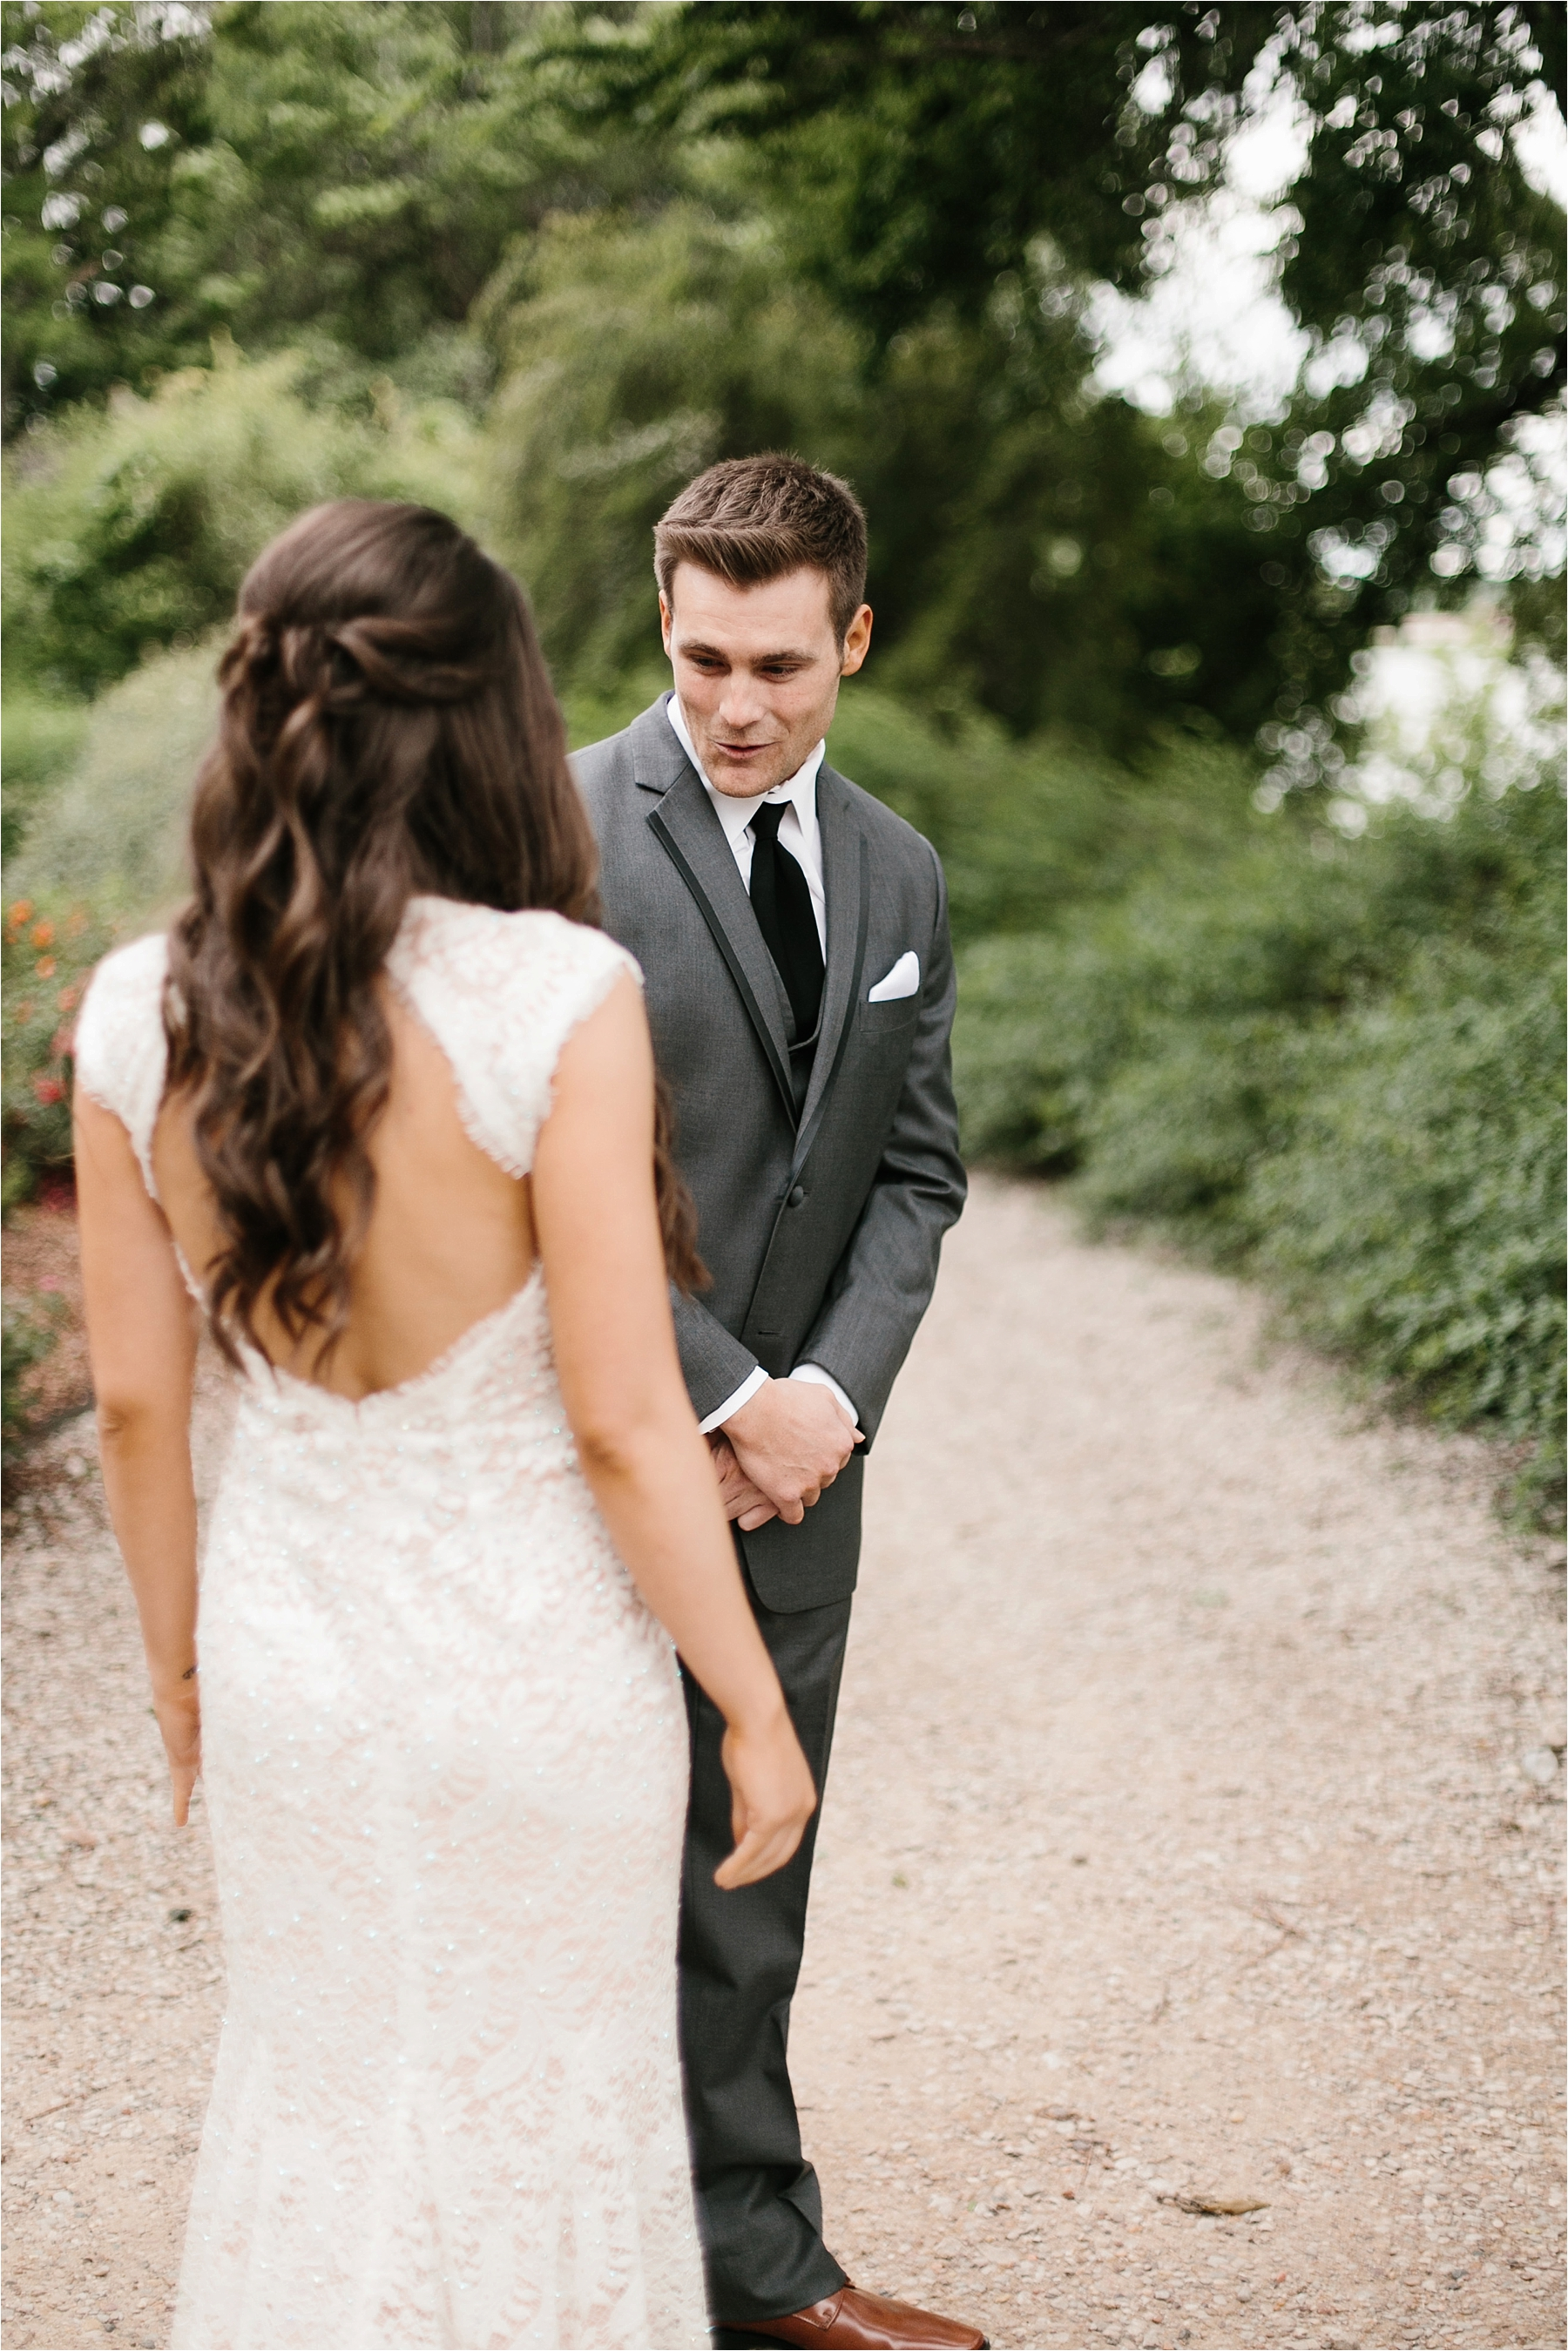 Devyn + Caden __ a Dallas Arboretum Garden Style Wedding by North Texas Wedding Photographer Rachel Meagan Photography __ 016